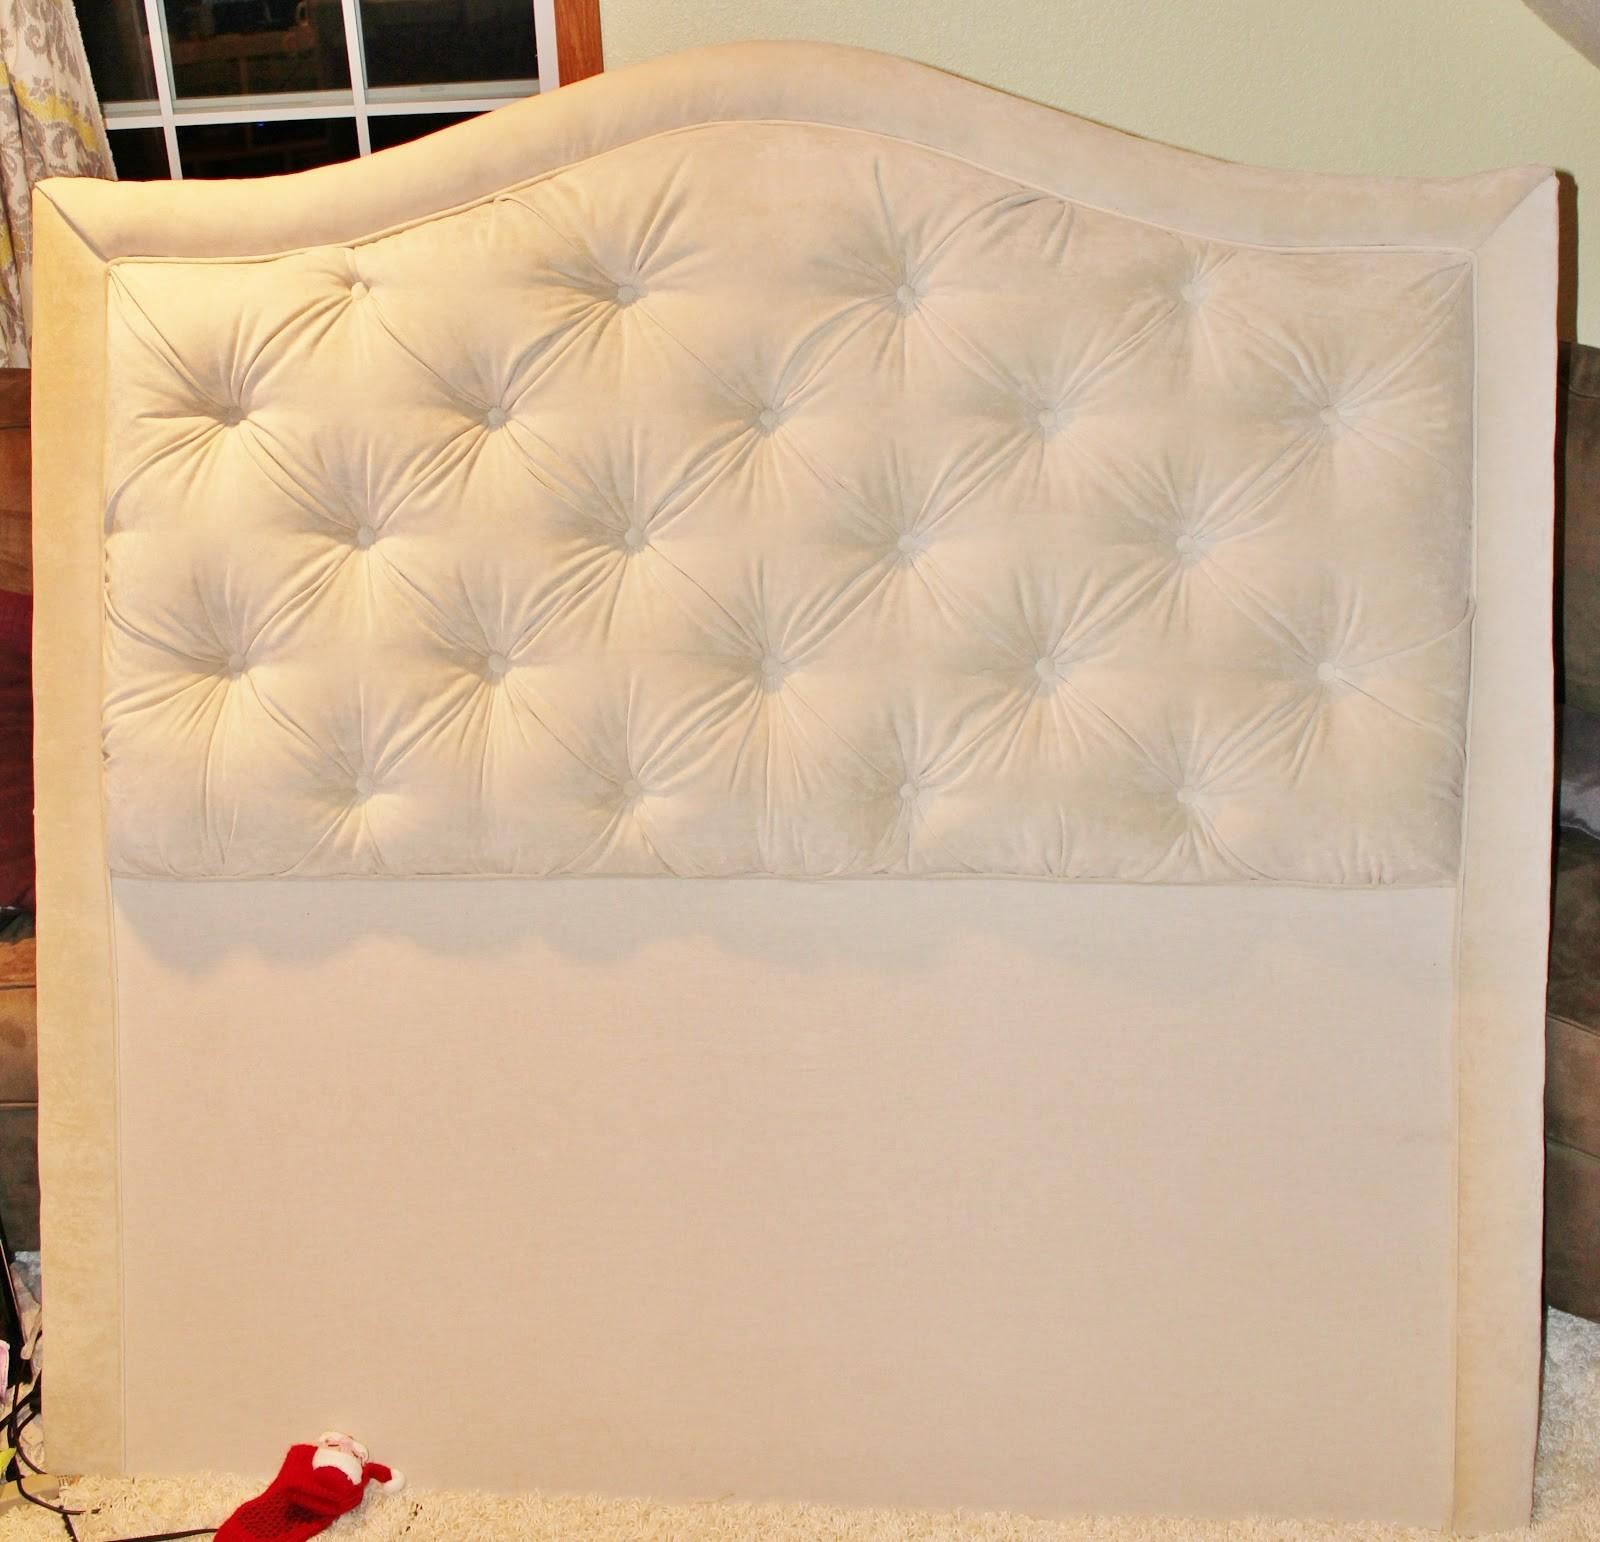 Hipholstery Diy Easy Tufted Headboard